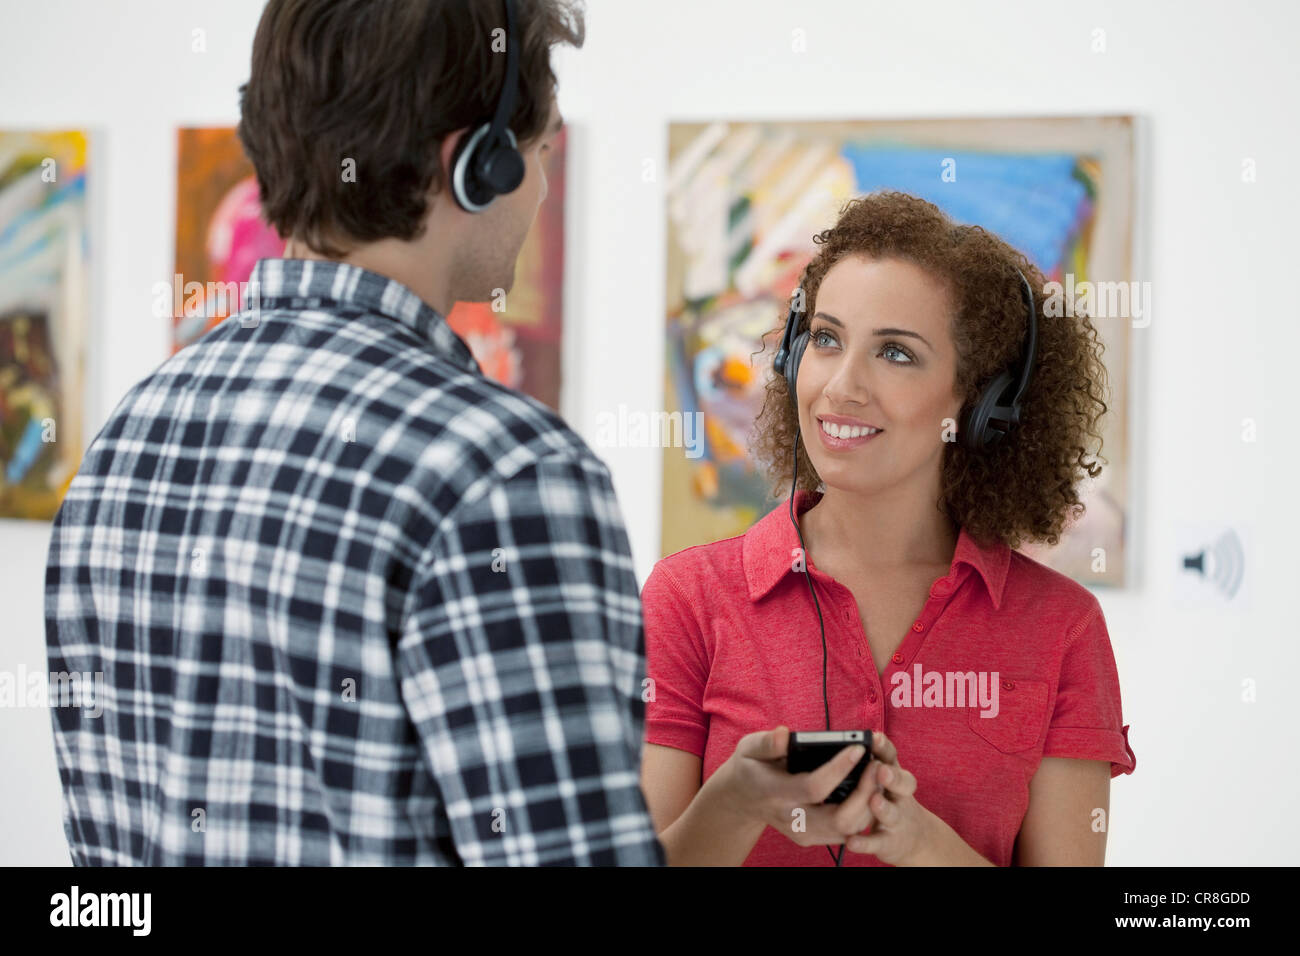 Young couple using audio guides in art gallery - Stock Image